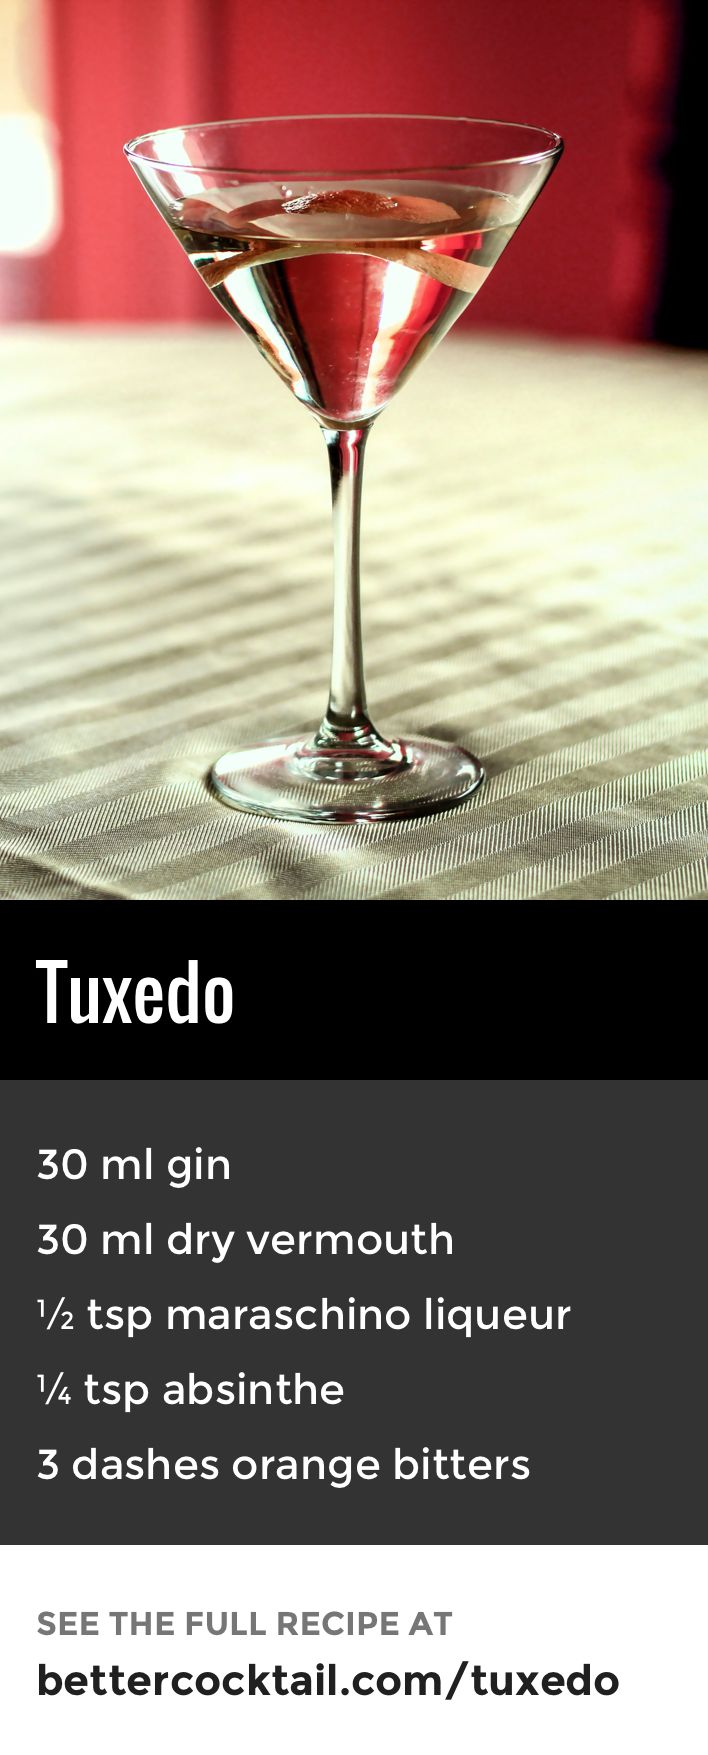 The Tuxedo cocktail is a blend of gin and vermouth with hints of maraschino, absinthe and orange bitters. The cocktail is usually served in a cocktail glass and garnished with a twist of lemon zest and a cherry. For the bitters, we recommend using Angostura orange bitters (link in the ingredients).